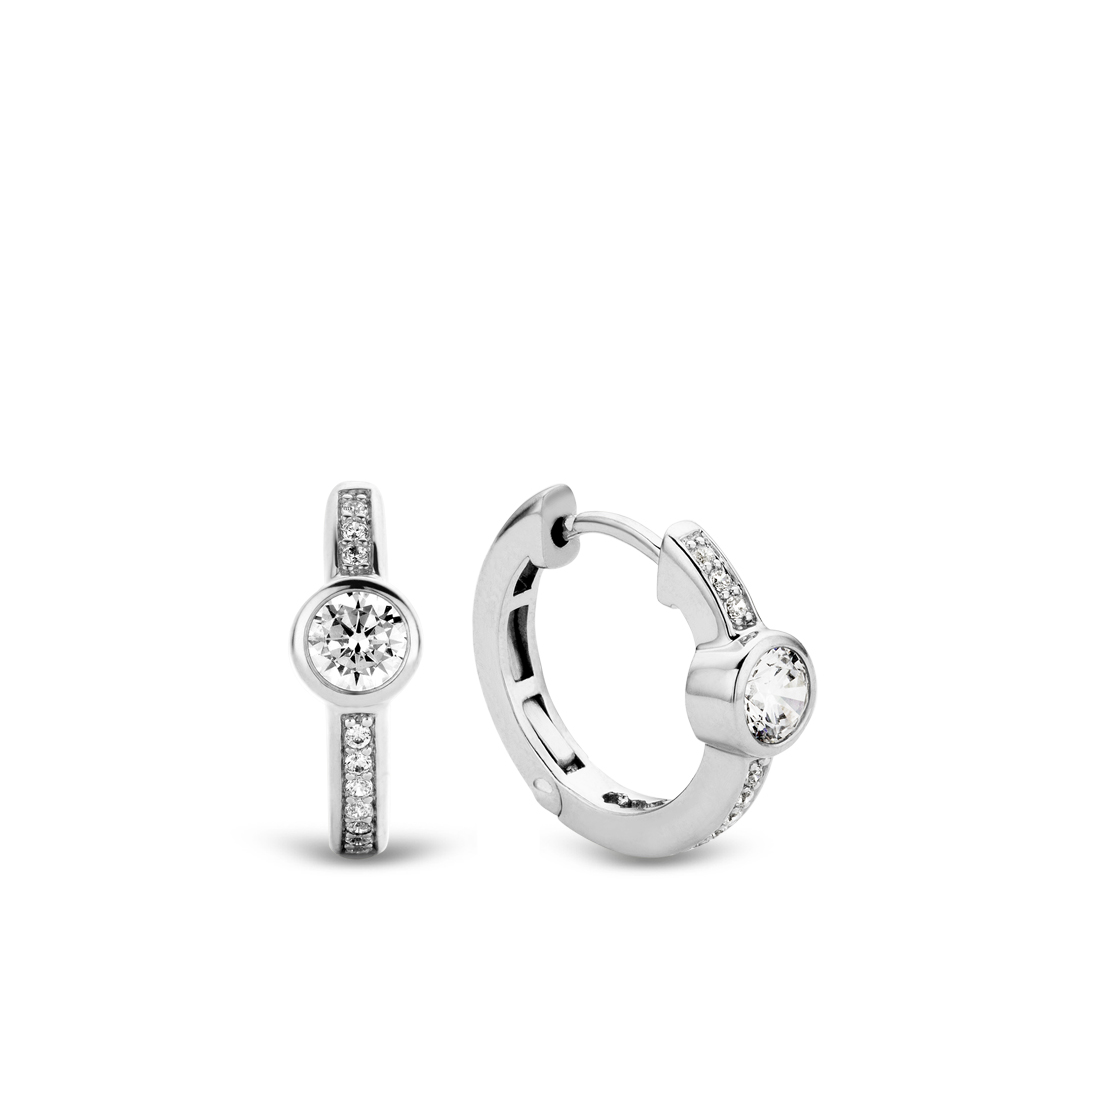 TI SENTO - Milano Earrings 7763ZI